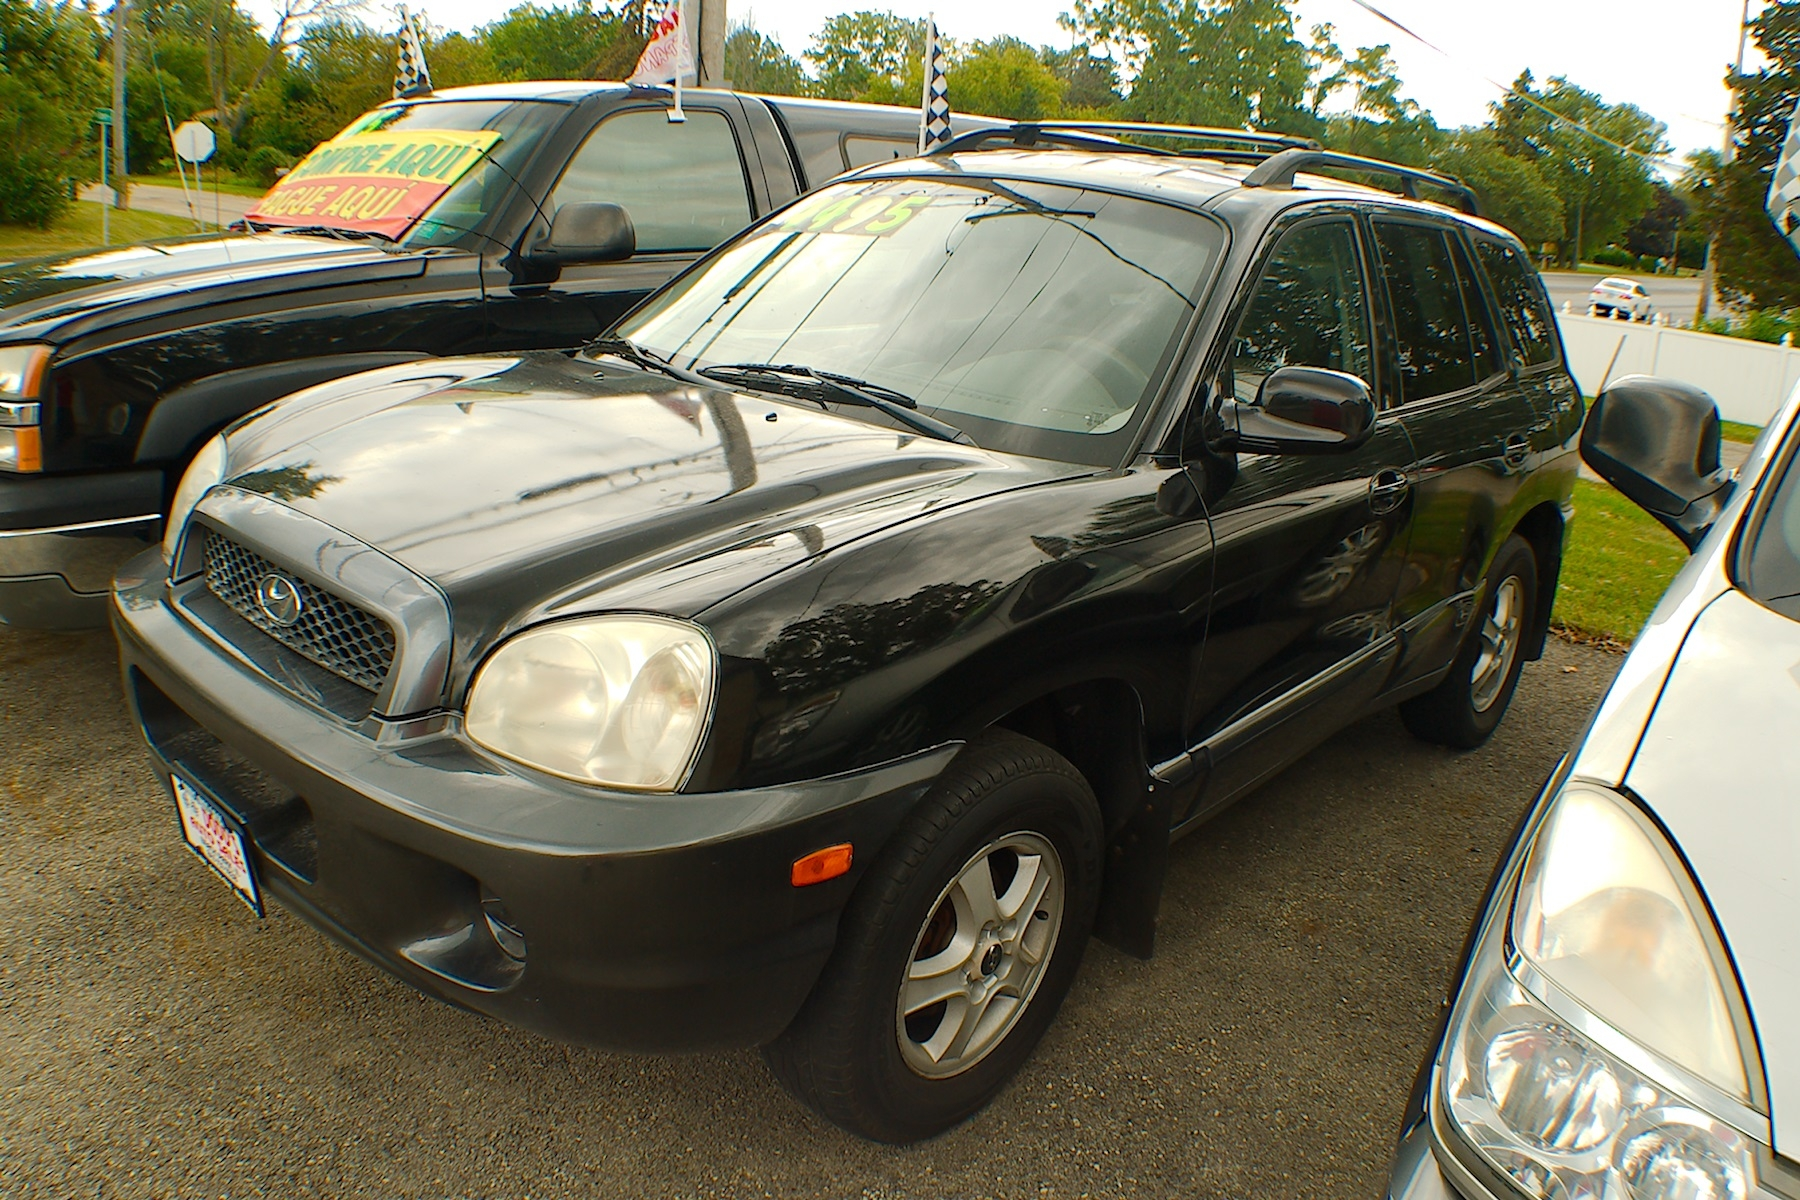 2003 Hyundai Santa Fe Black SUV Sale Antioch Zion Waukegan Lake County Illinois